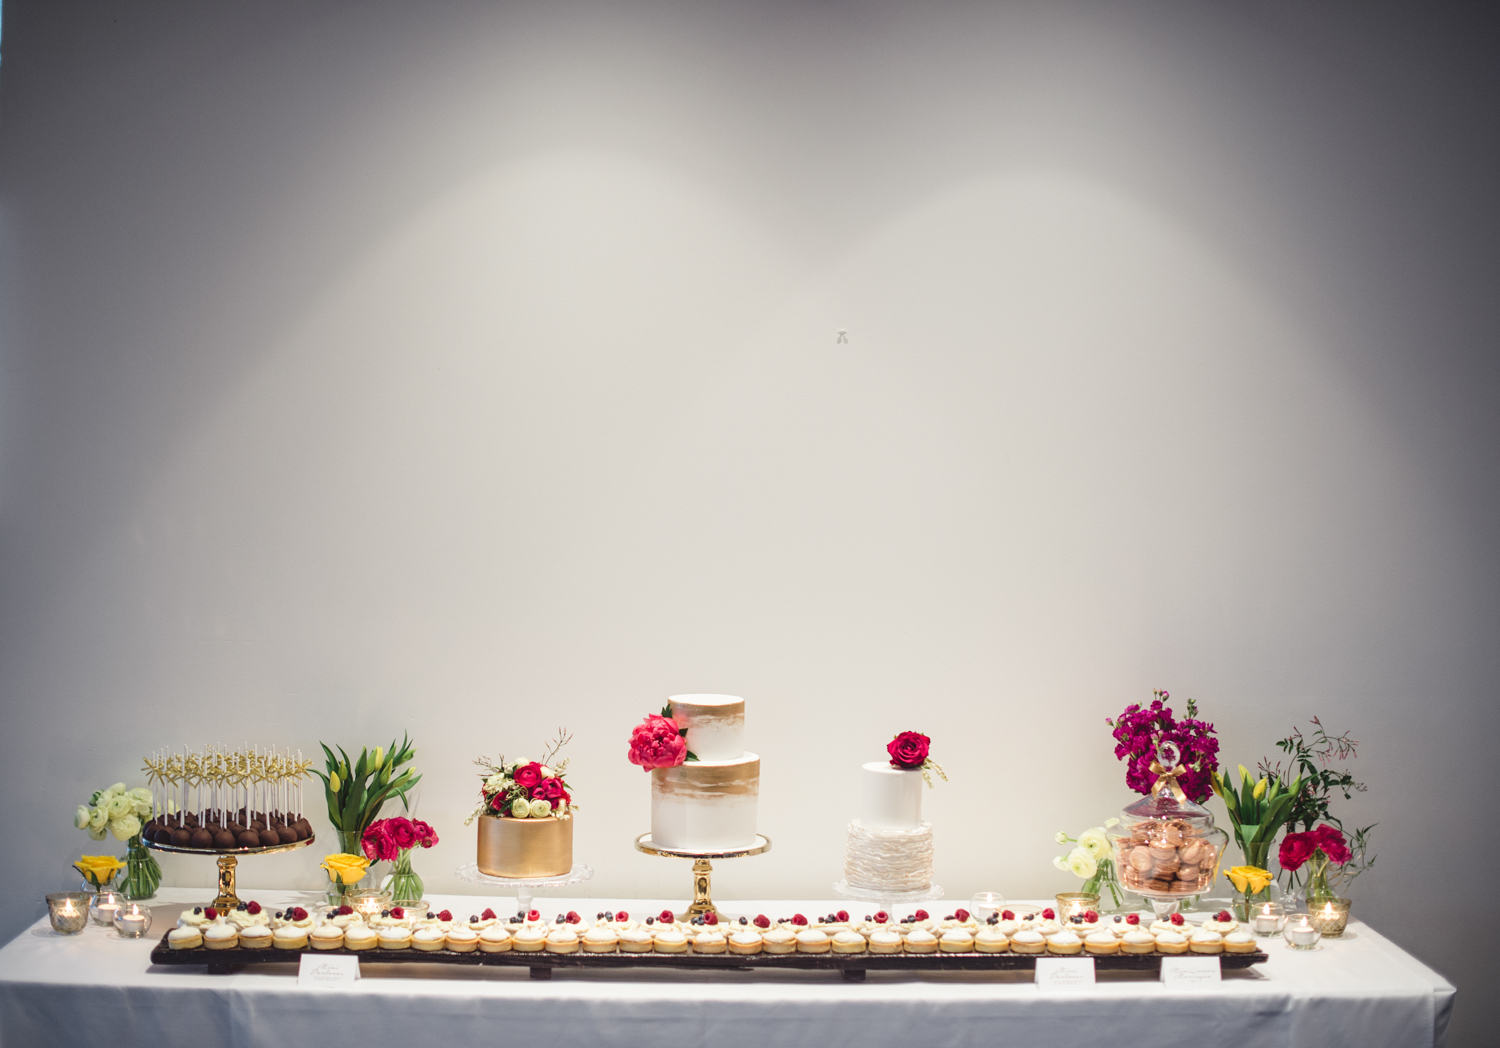 dessert bar for your event